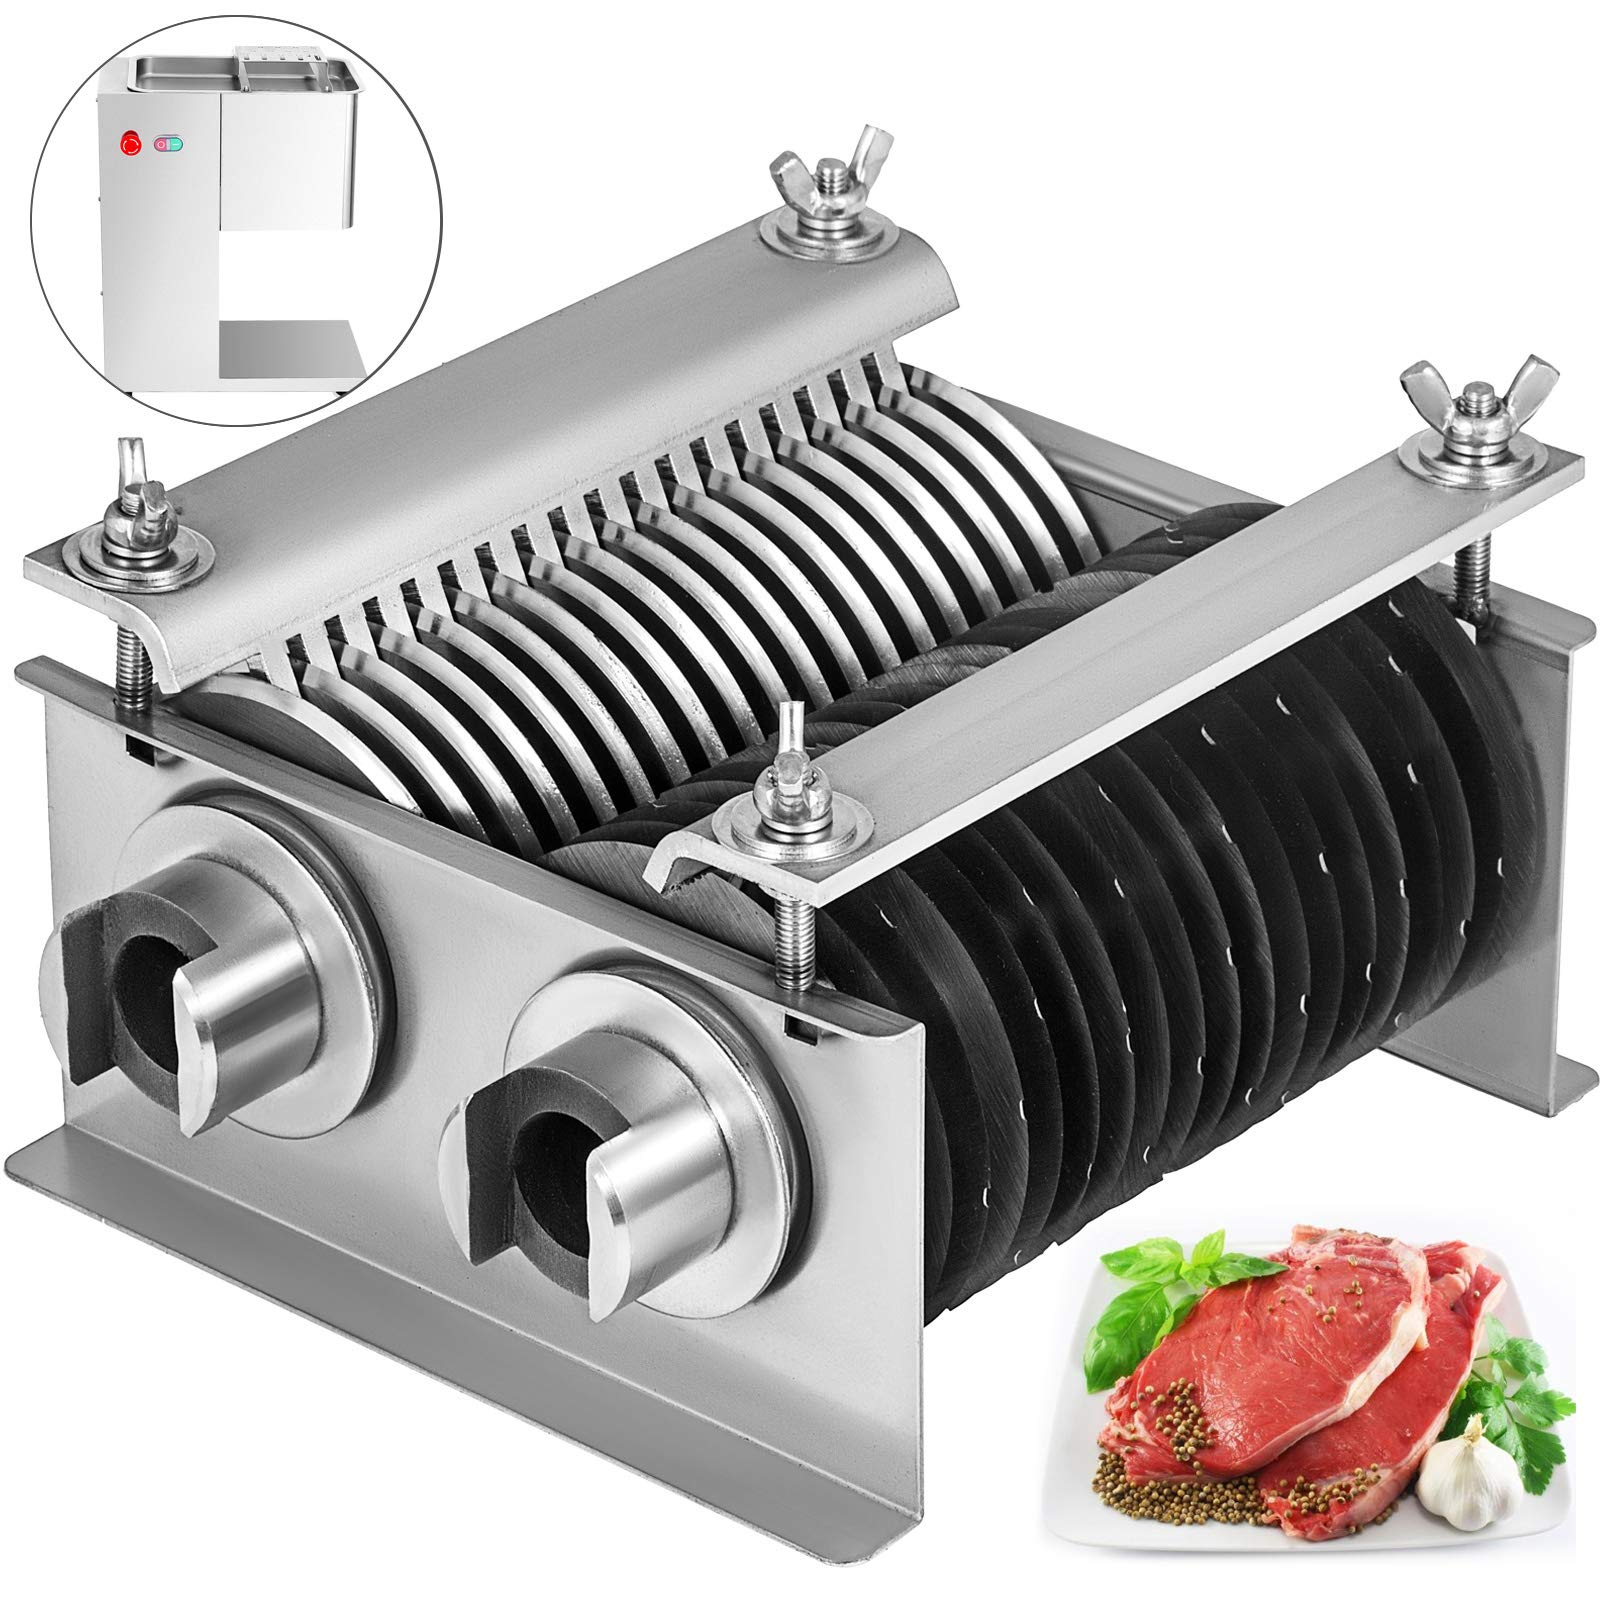 BestEquip One Set Blade 7mm for Vertical Meat Slicer 1100 LB/H 550W Meat Cutting Machine 7mm Blade by BestEquip